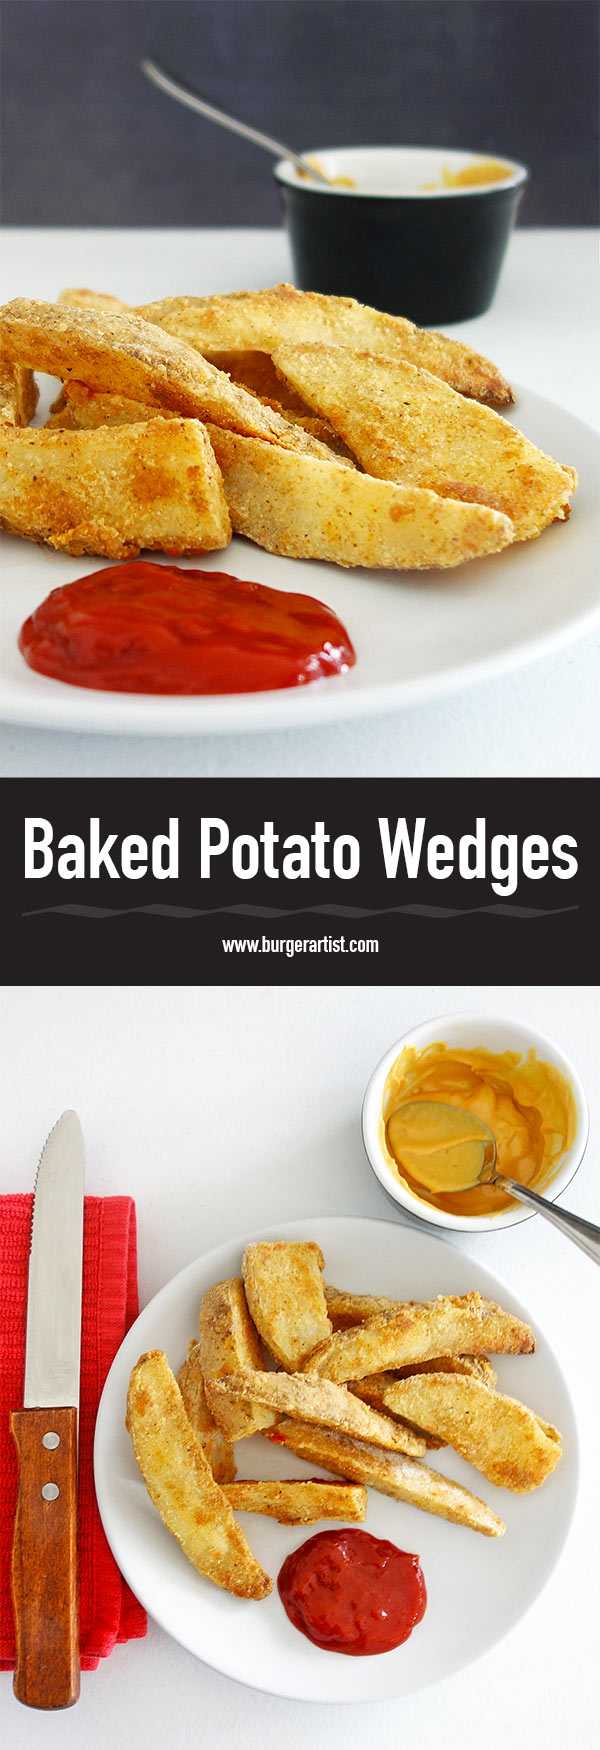 Oven Baked Potato Wedges are awesome if you want fresh homemade fries without the mess of frying. Hot, fluffy, and delicious with any meal.